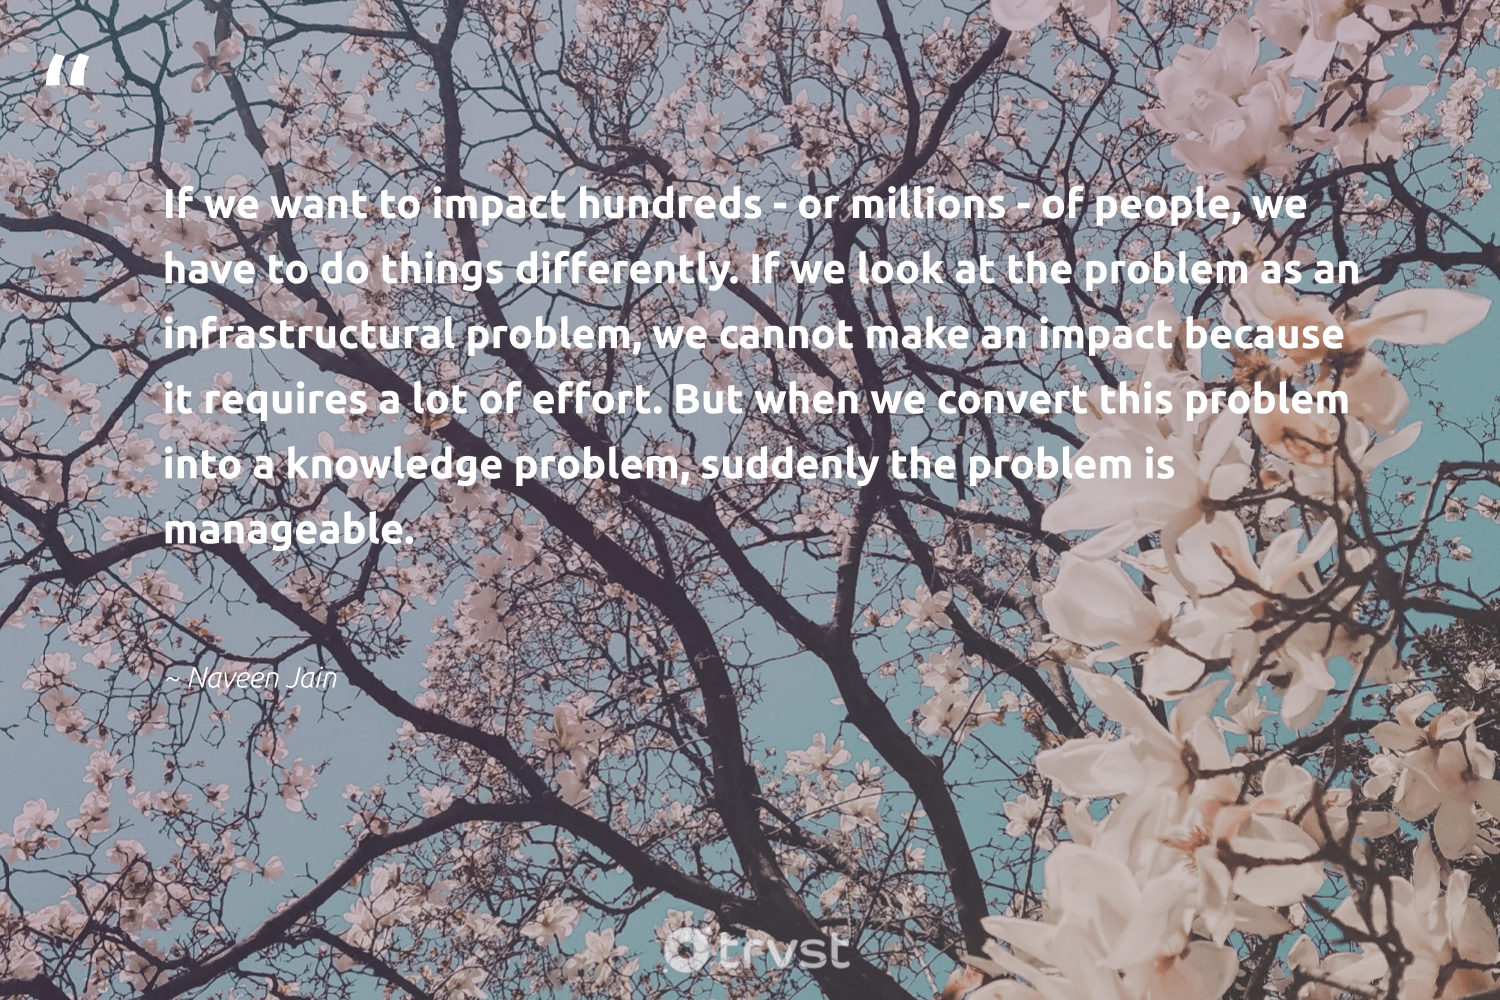 """If we want to impact hundreds - or millions - of people, we have to do things differently. If we look at the problem as an infrastructural problem, we cannot make an impact because it requires a lot of effort. But when we convert this problem into a knowledge problem, suddenly the problem is manageable.""  - Naveen Jain #trvst #quotes #impact #giveback #collectiveaction #makeadifference #takeaction #socialchange #gogreen #ethicalbusiness #dosomething #betterplanet"